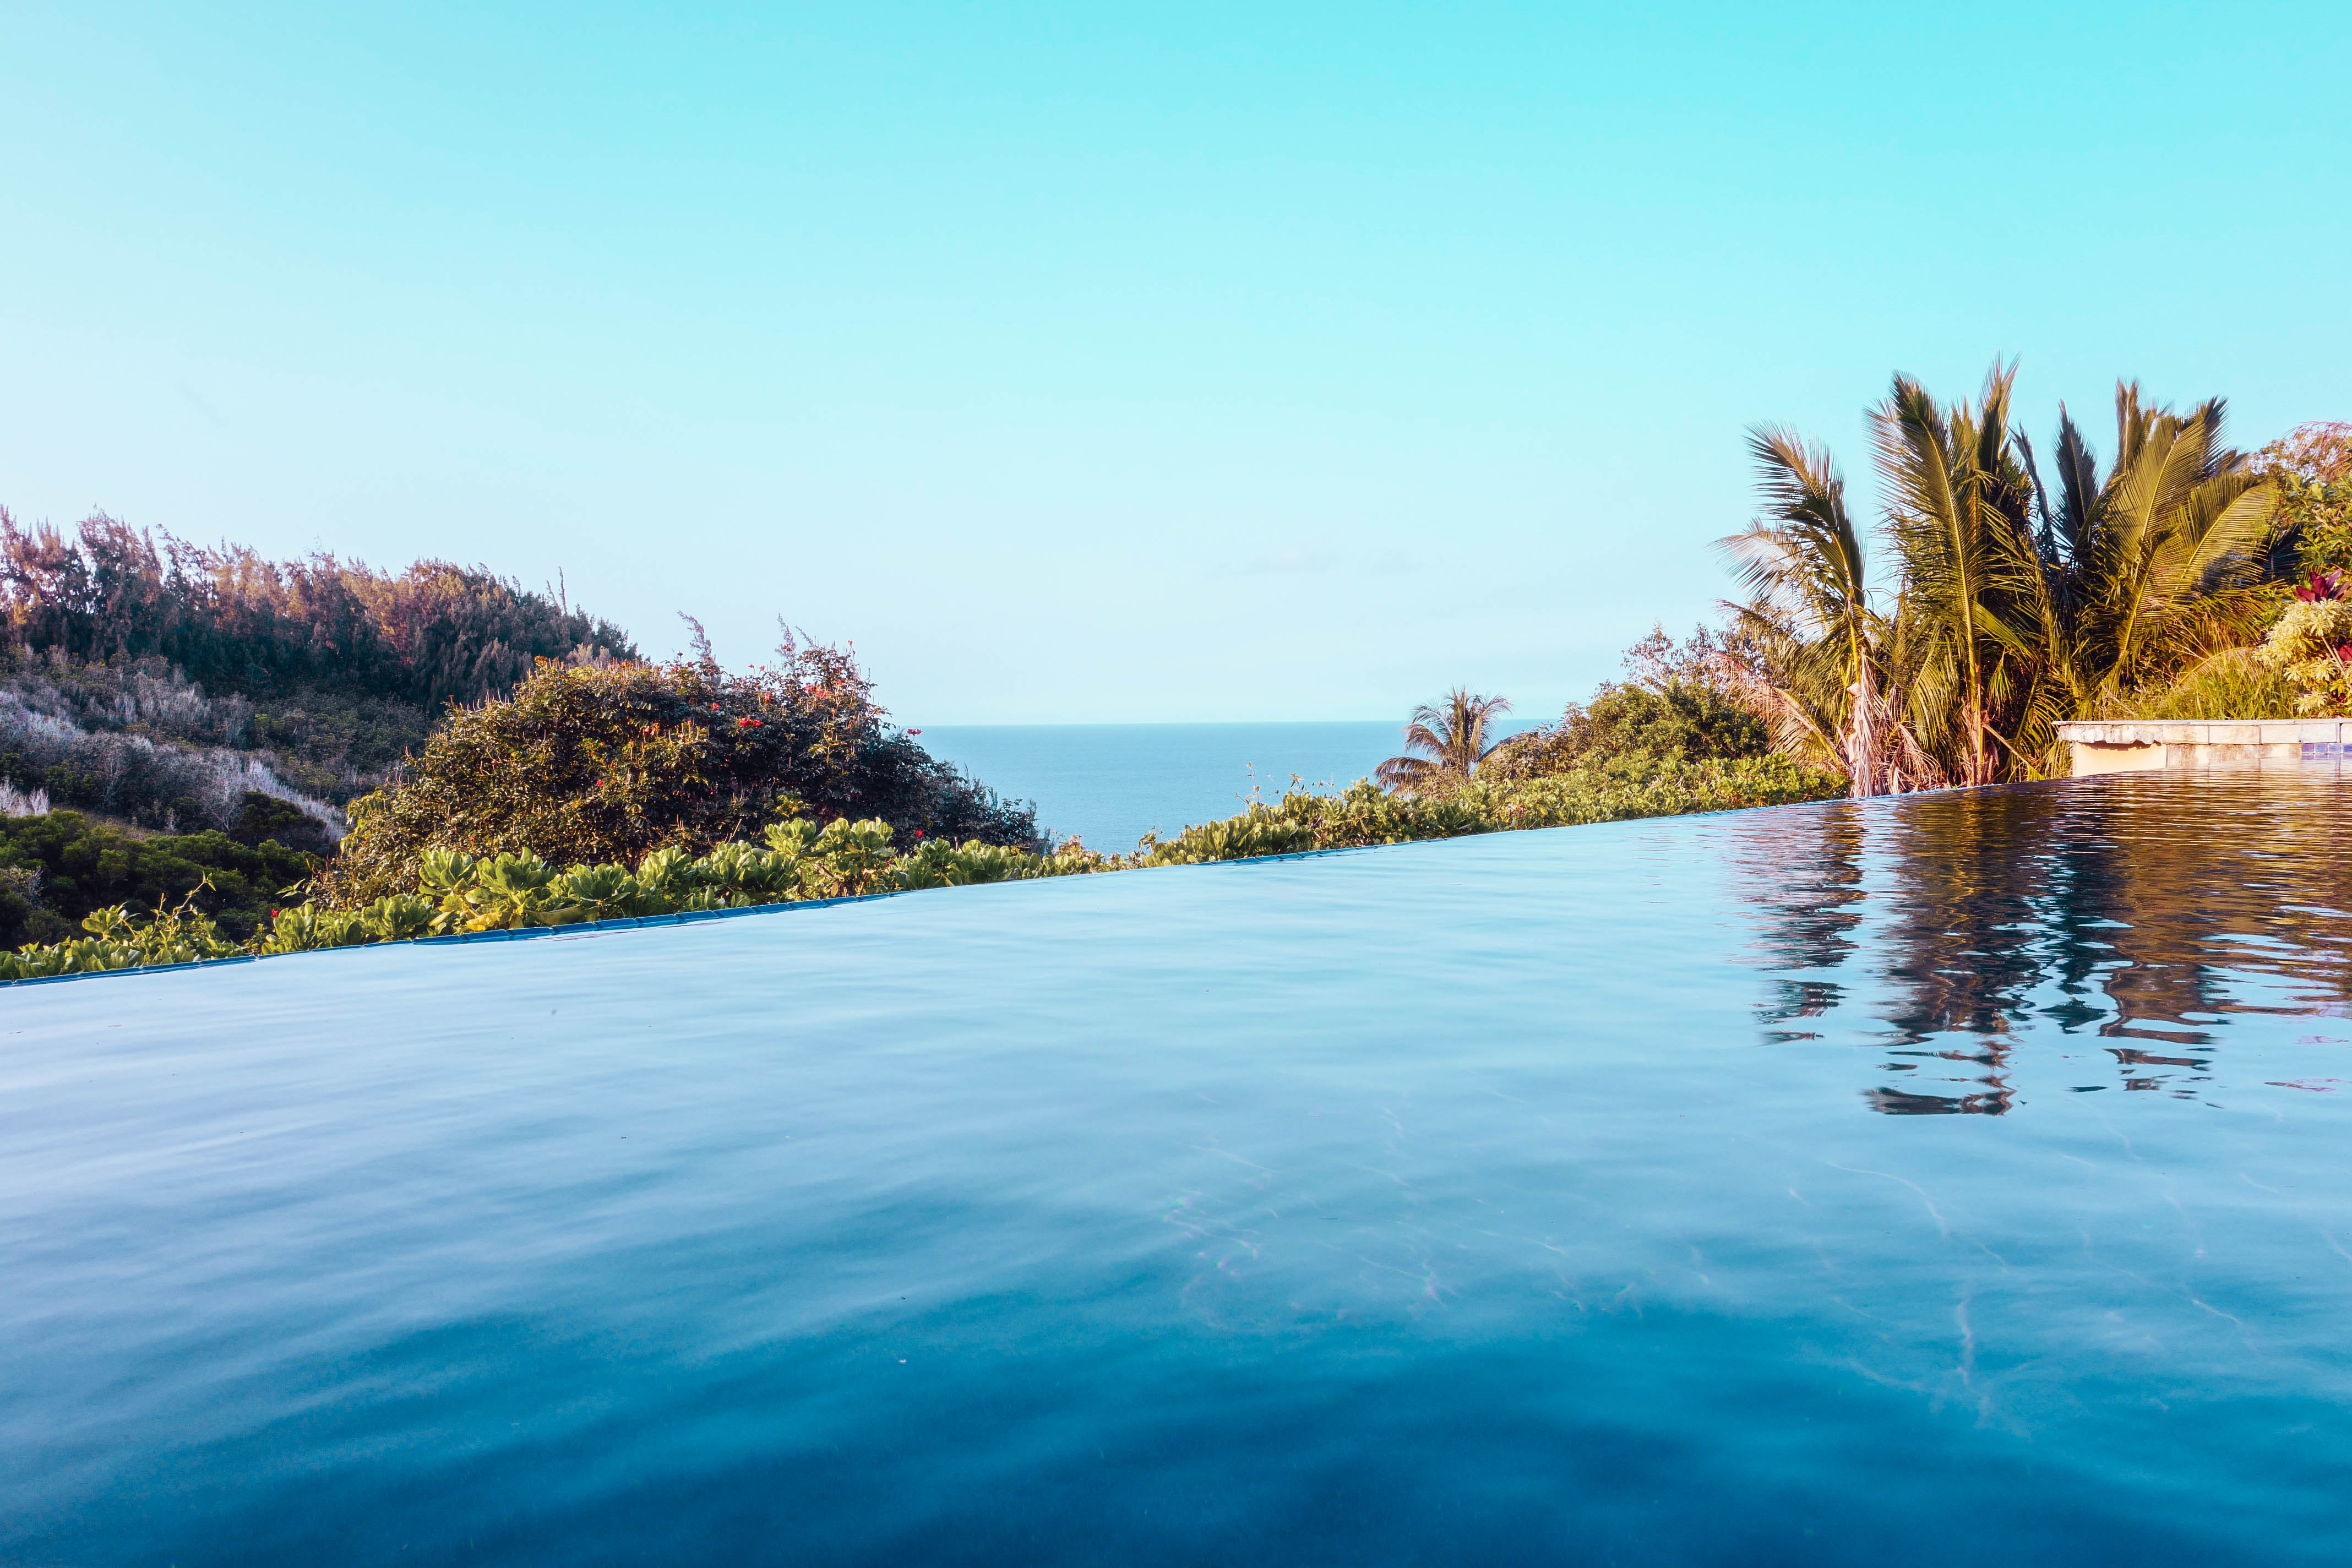 A pool in a tropical environment with a view on the vast ocean